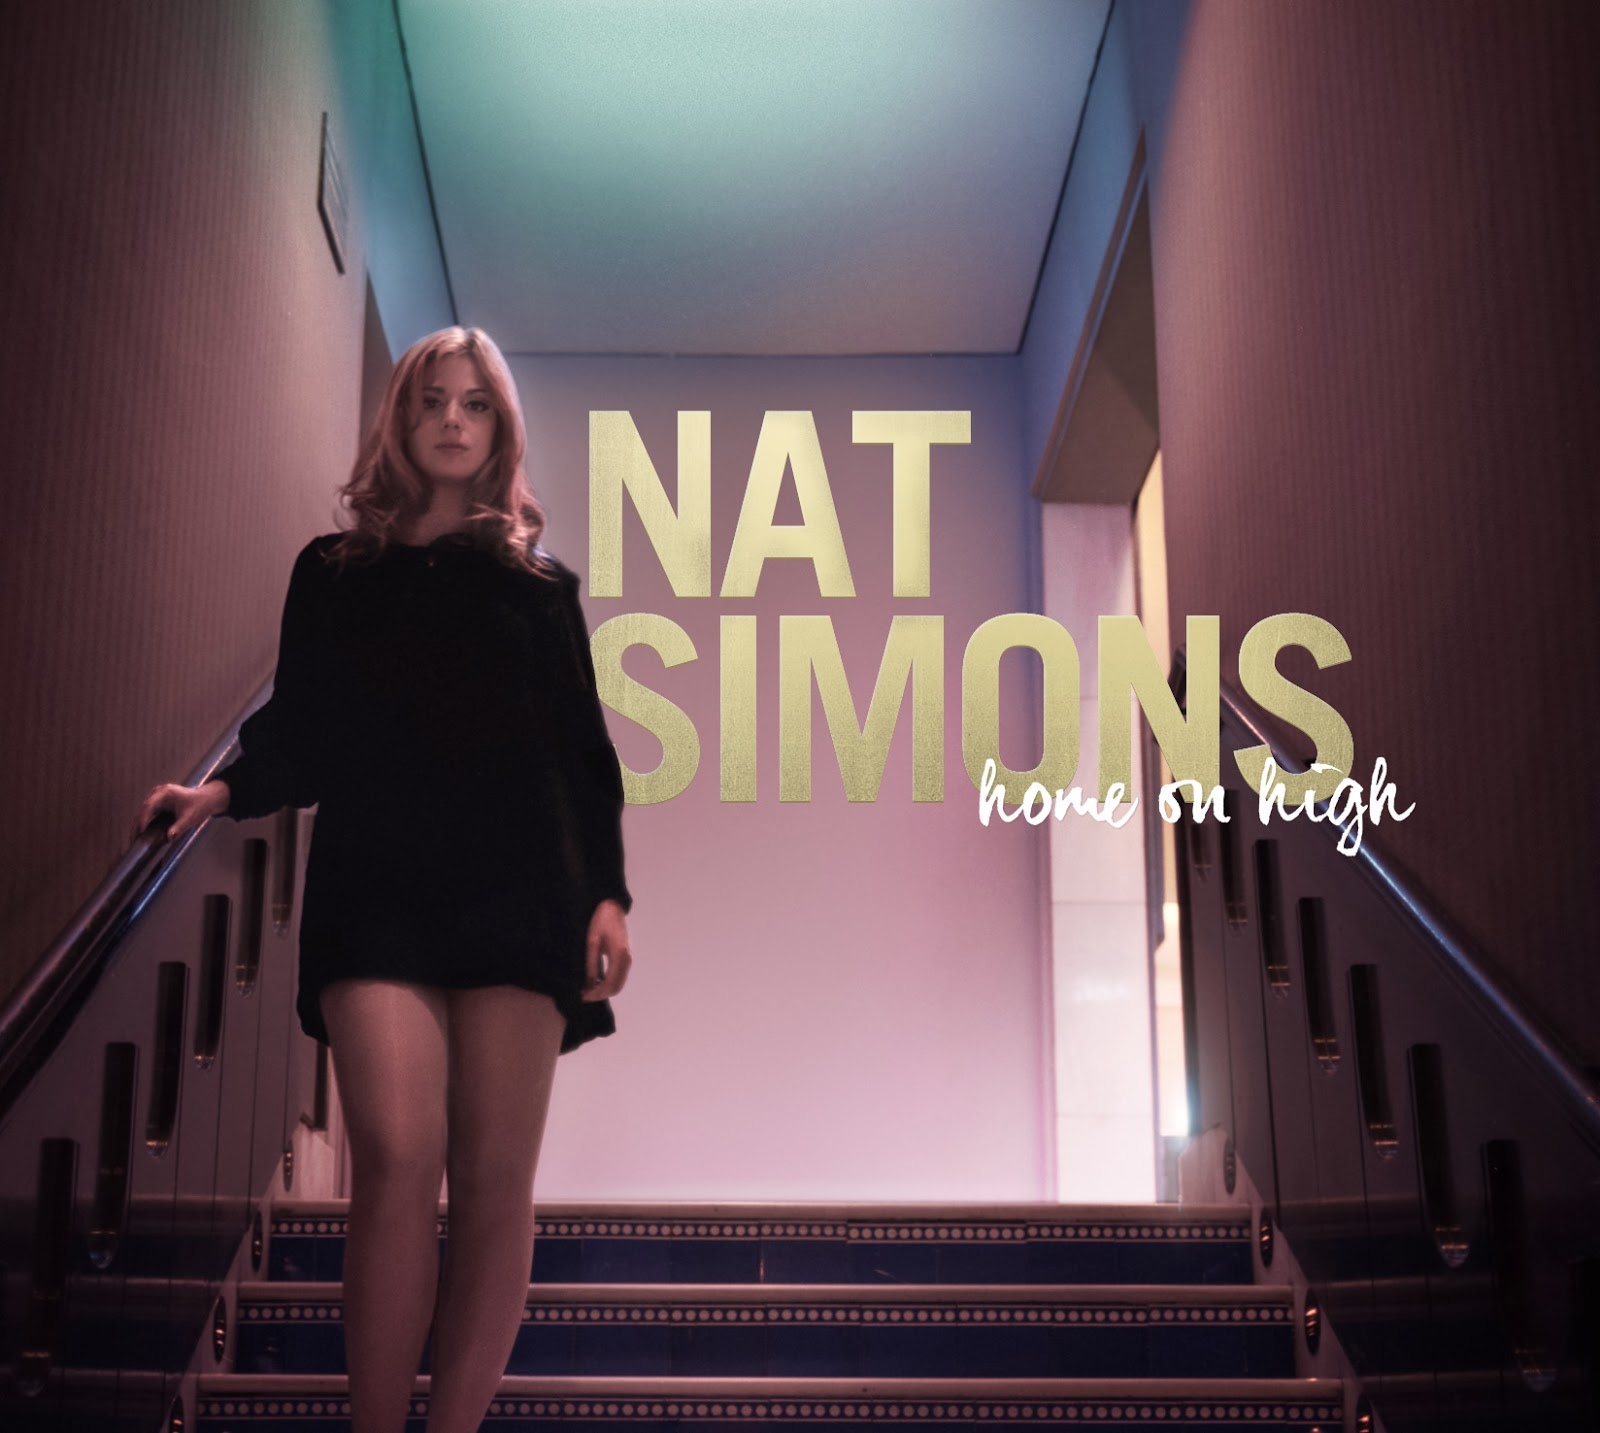 Nat Simons Home on high